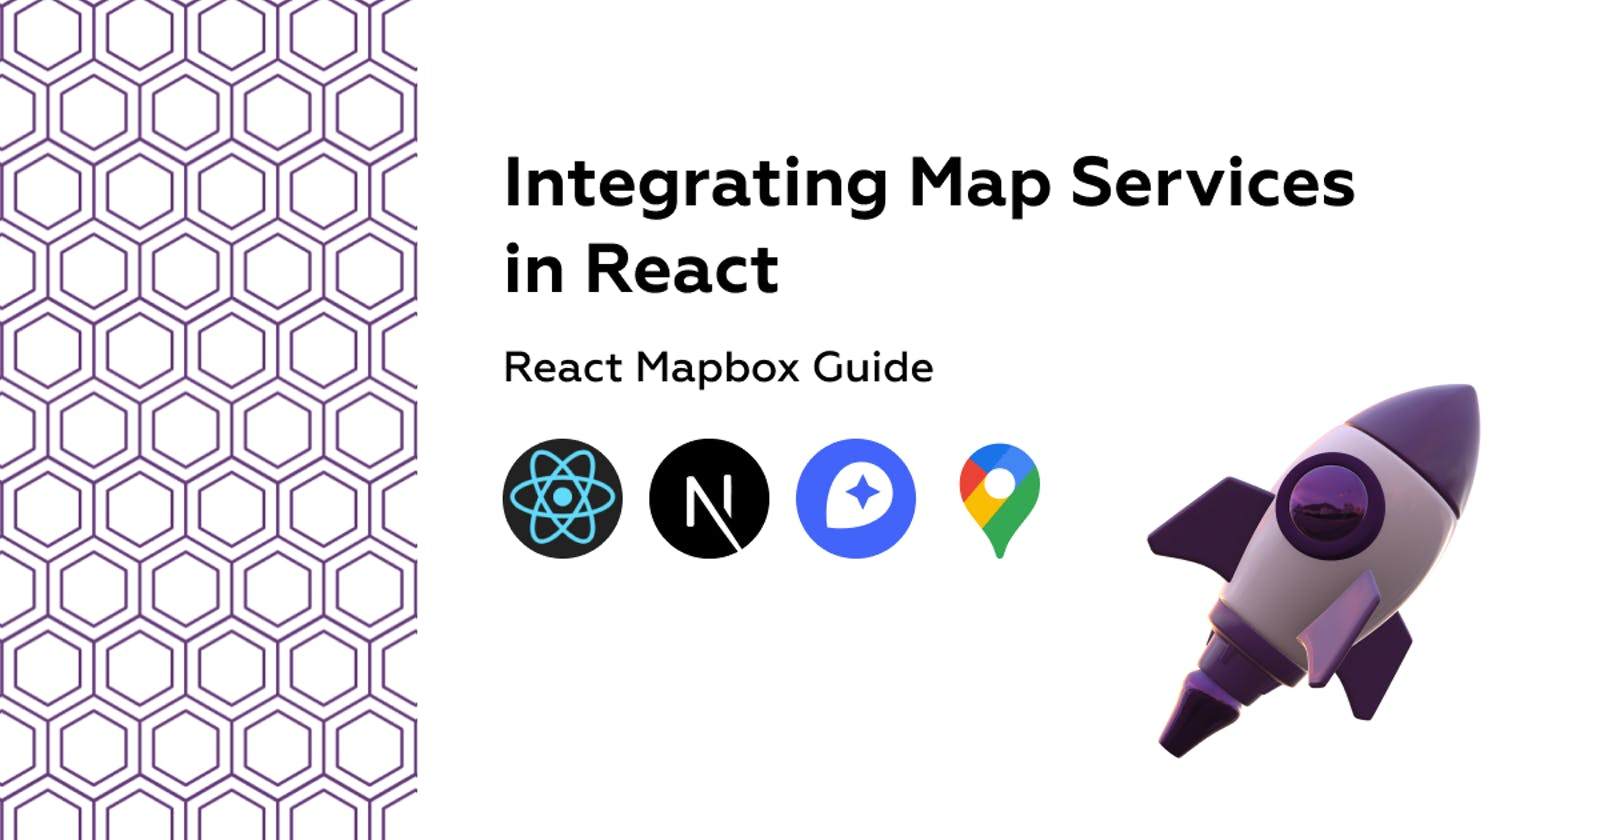 Integrating Map Services in React